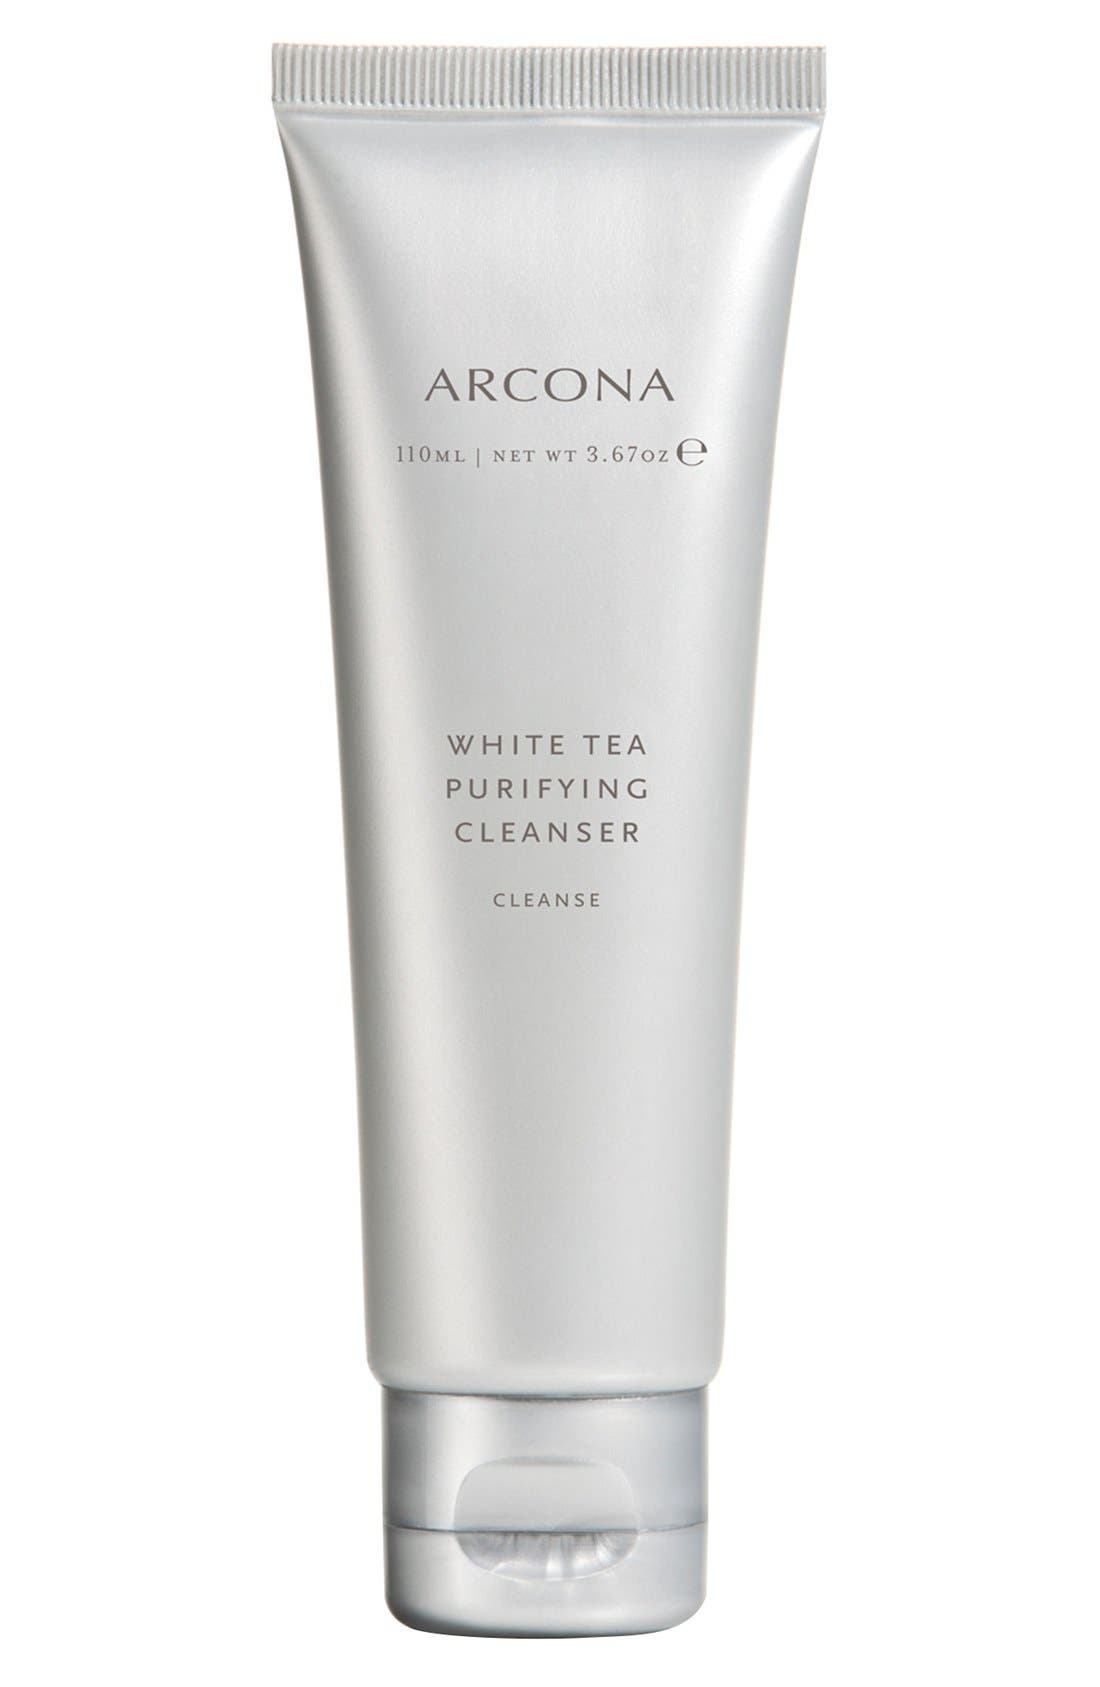 White Tea Purifying Cleanser, Arcona skincare